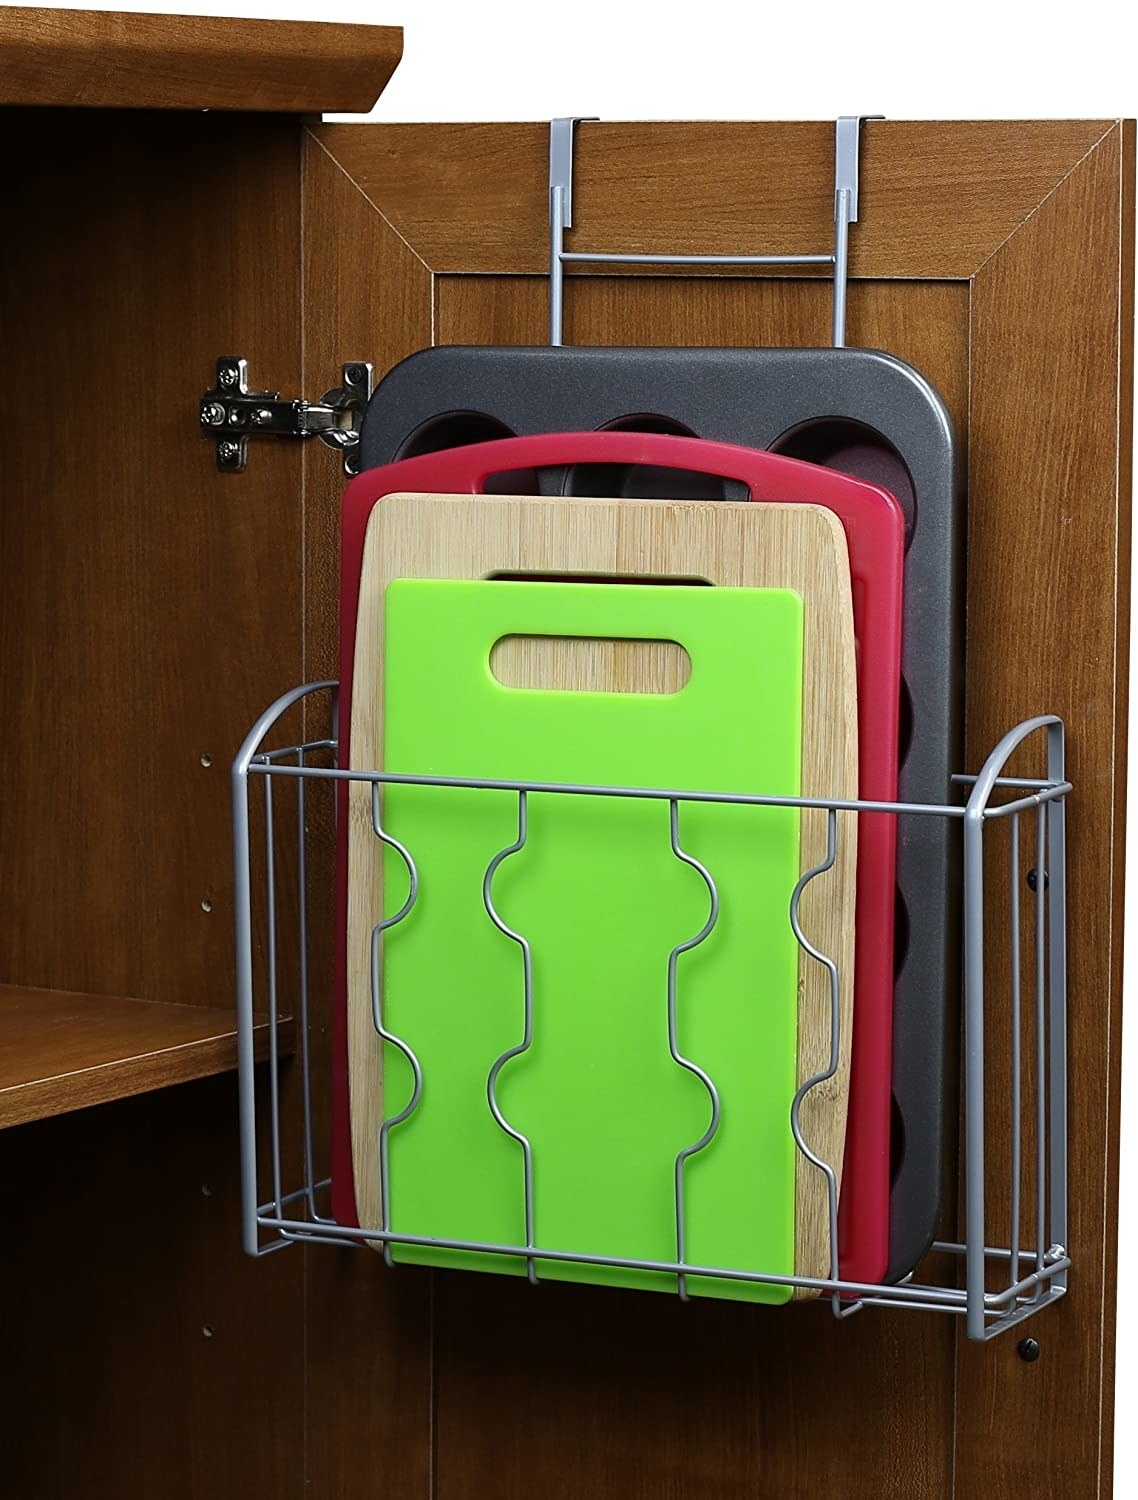 The cupboard caddy holding a baking sheet and three cutting boards